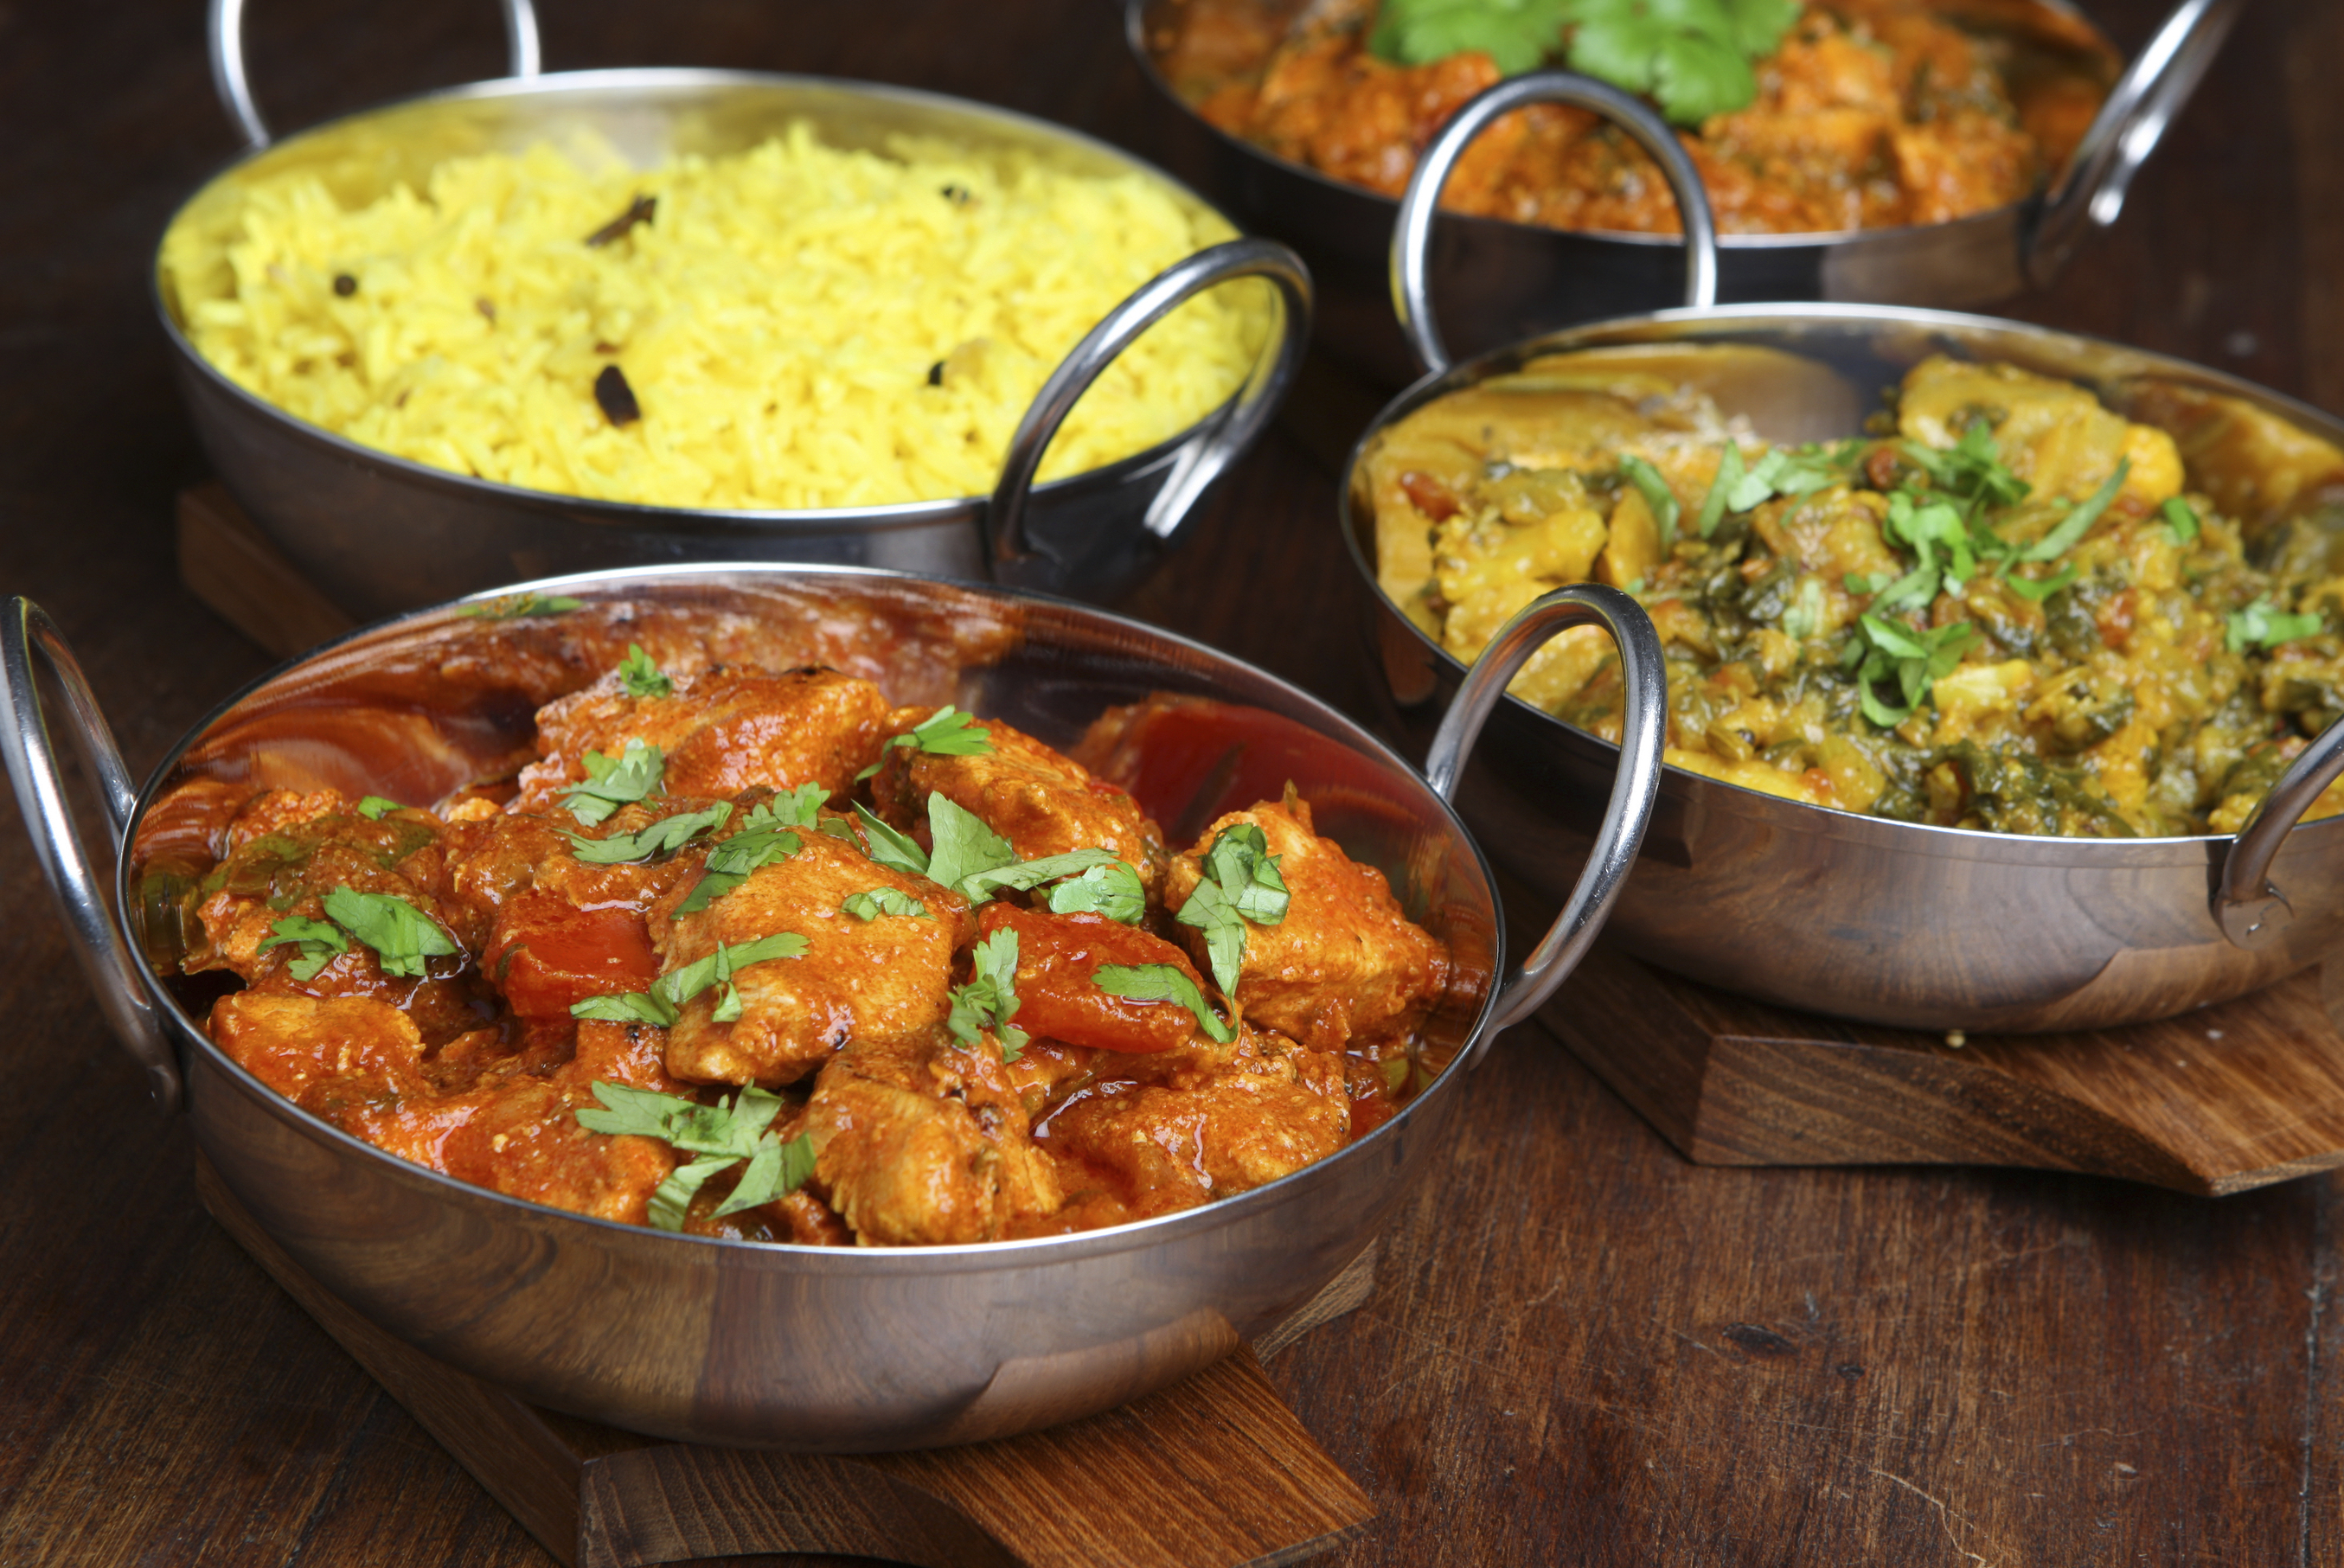 A curry from a Dundee restaurant was found to contain peanuts without warning